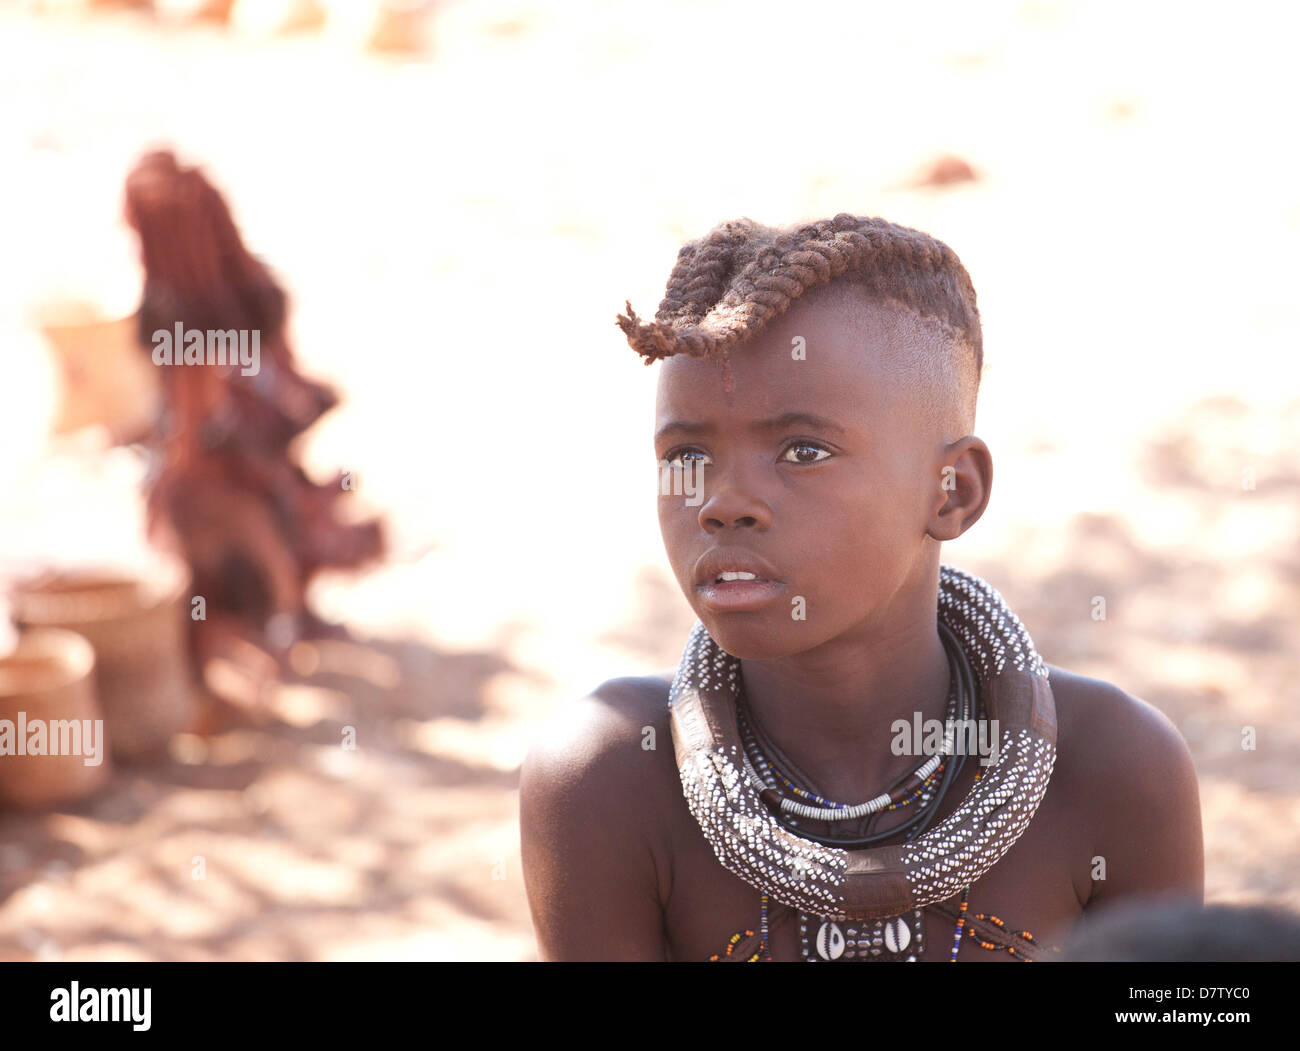 Young Himba boy with plaited hair, Kunene Region (formerly Kaokoland) in the far north of Namibia - Stock Image